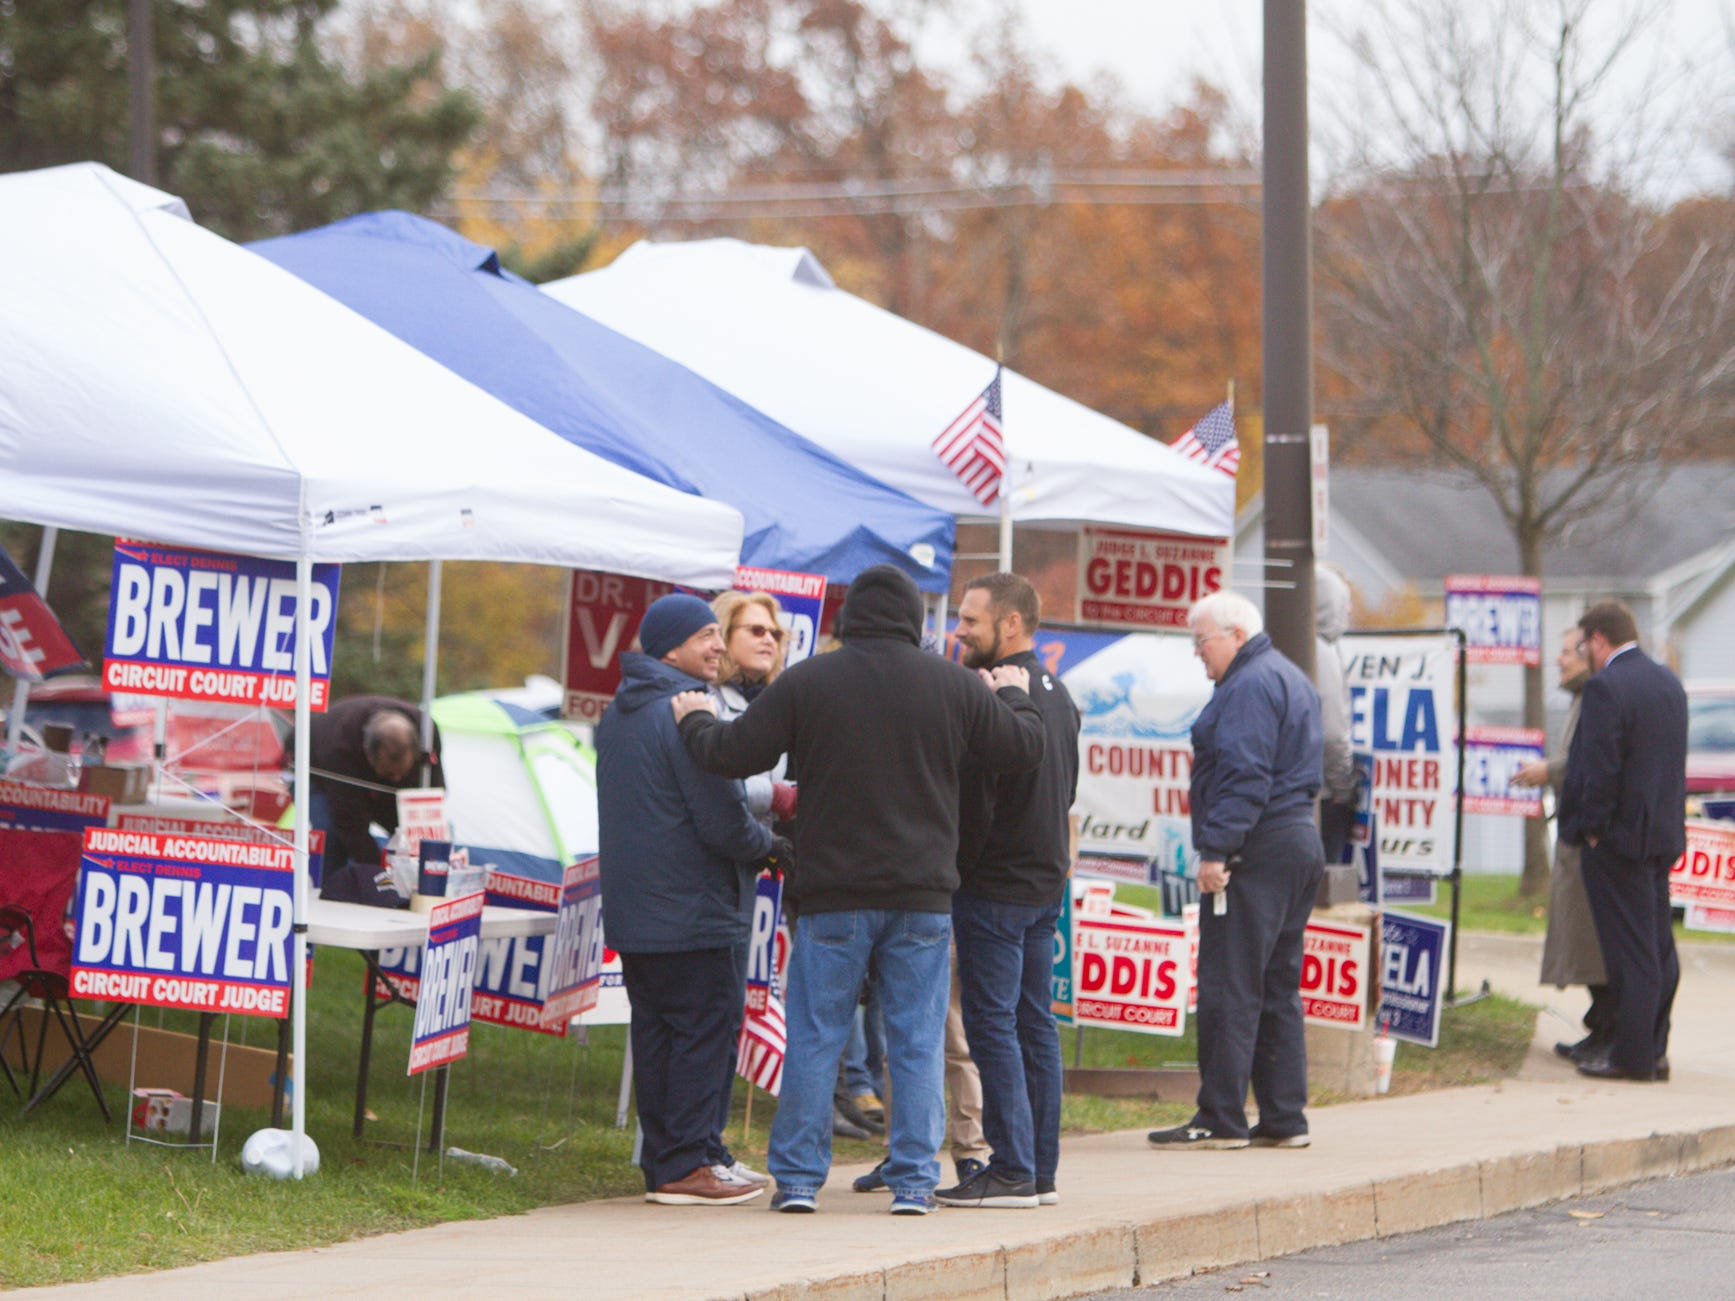 Circuit Court judge candidate Dennis Brewer and 22nd state Senate candidate Lana Theis, left, and others supporting candidates for various races line the parking lot at the Hartland Educational Support Service Center Tuesday, Nov. 6, 2018, a location for five precincts' polls.